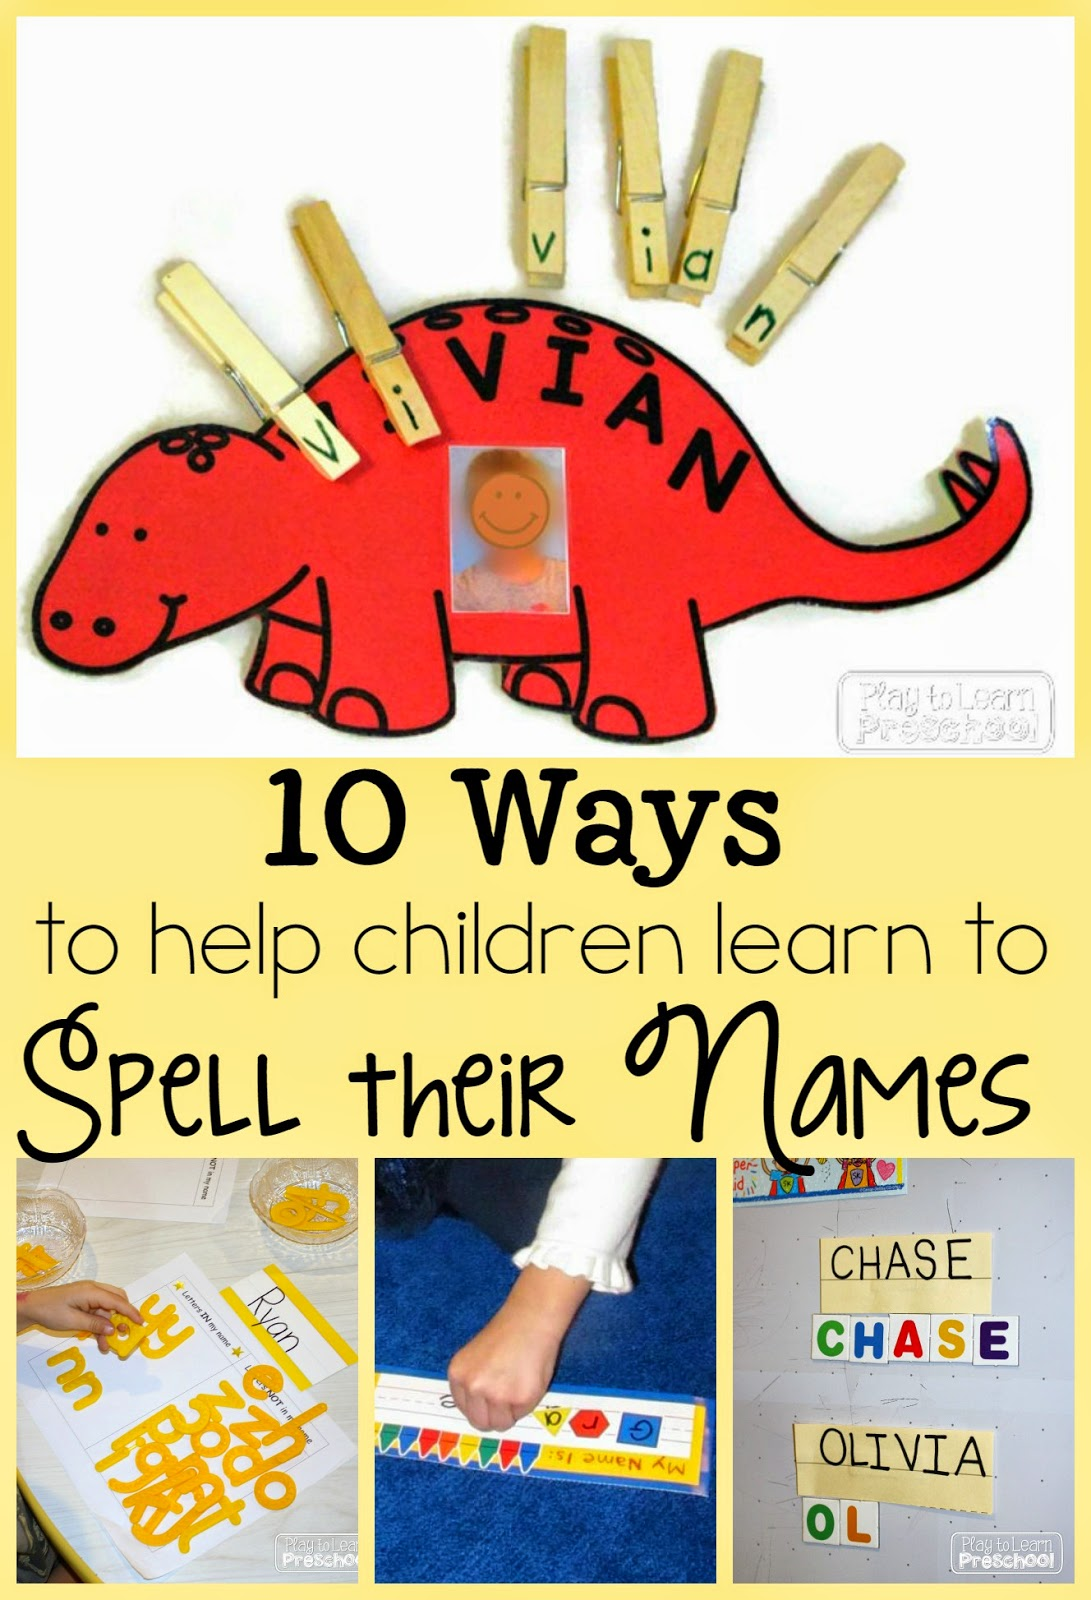 Play To Learn Preschool Spelling Our Names